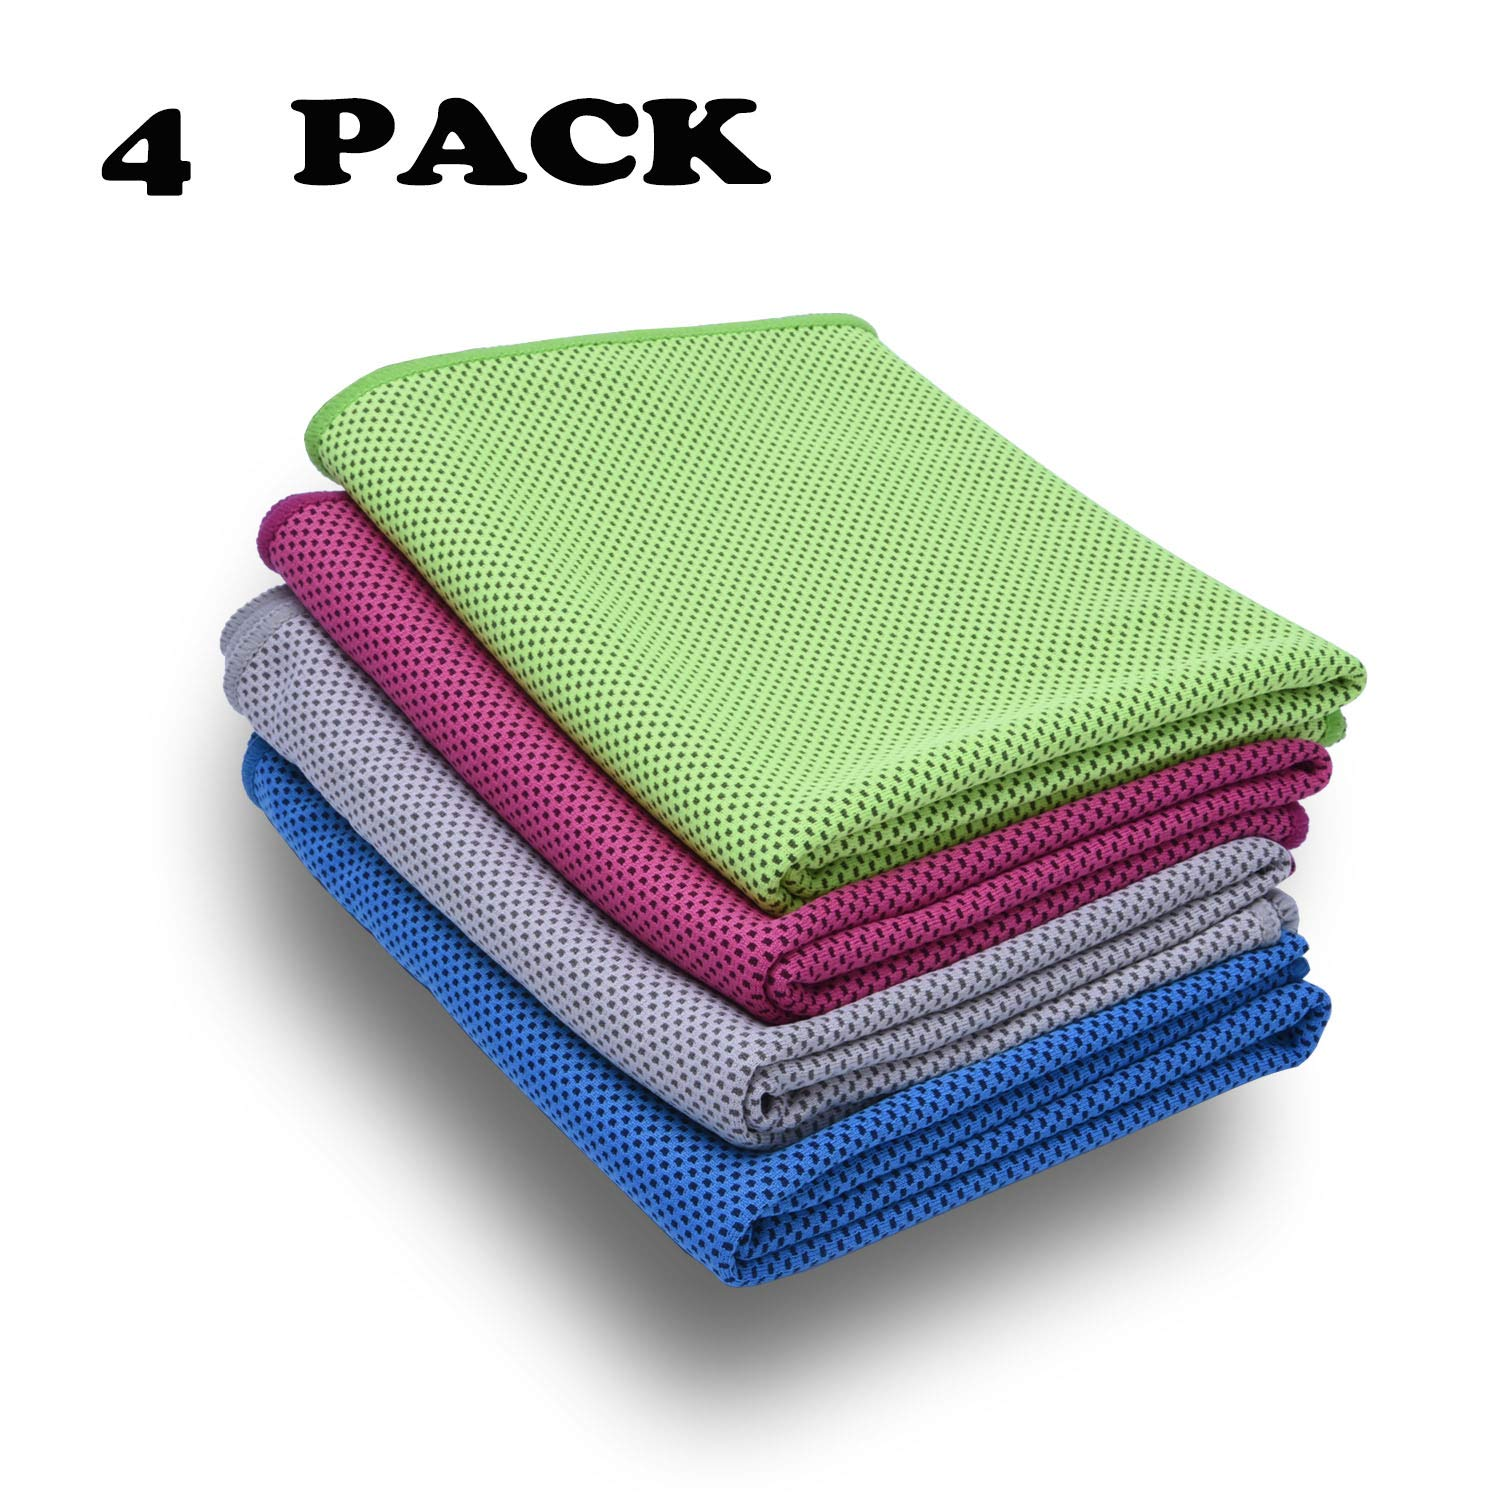 Cooling Towel, 4 Pack,Stay Cool for Travel Camping Golf Football & Outdoor Sports, Instant Cooling Relief & Ice Cold Quickly, Enduracool Towels for Neck & Head